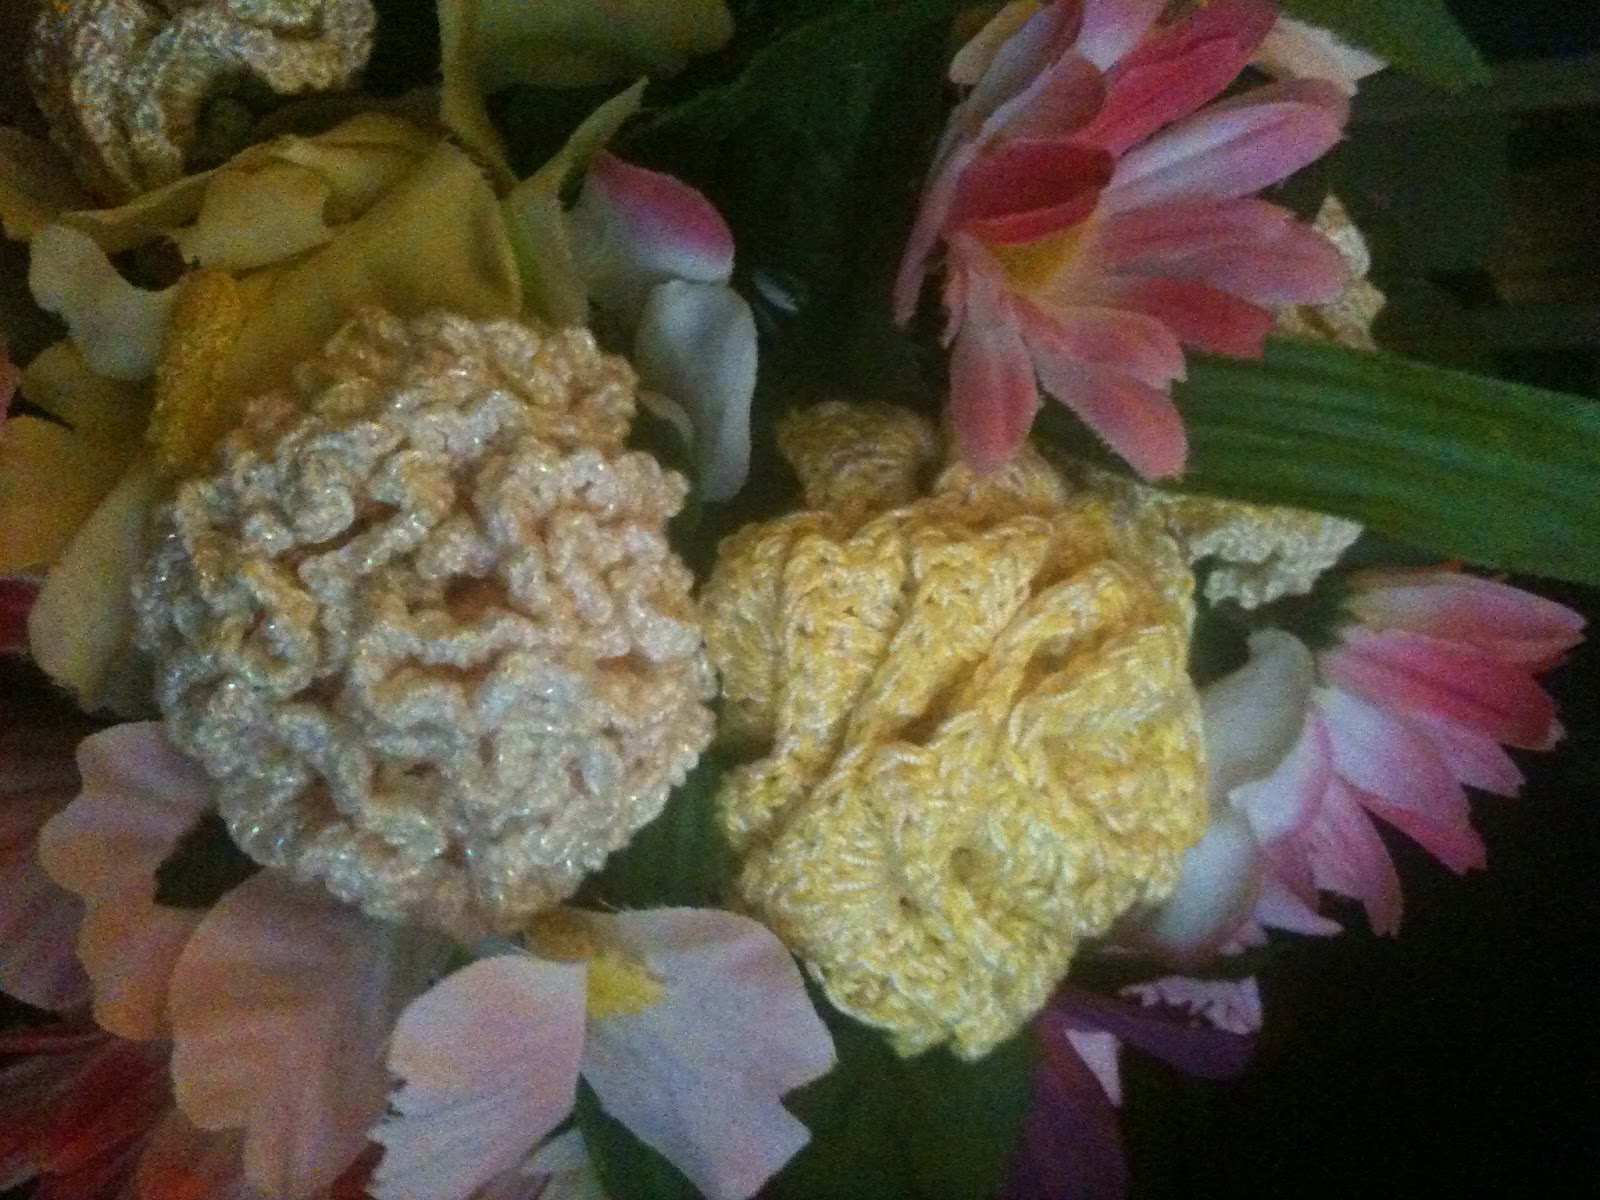 A wedding bouquet with crochet flowers dkb crochet works unique i have since lost some of the patterns but still have a few put away somewhere i am going to have to dig them out izmirmasajfo